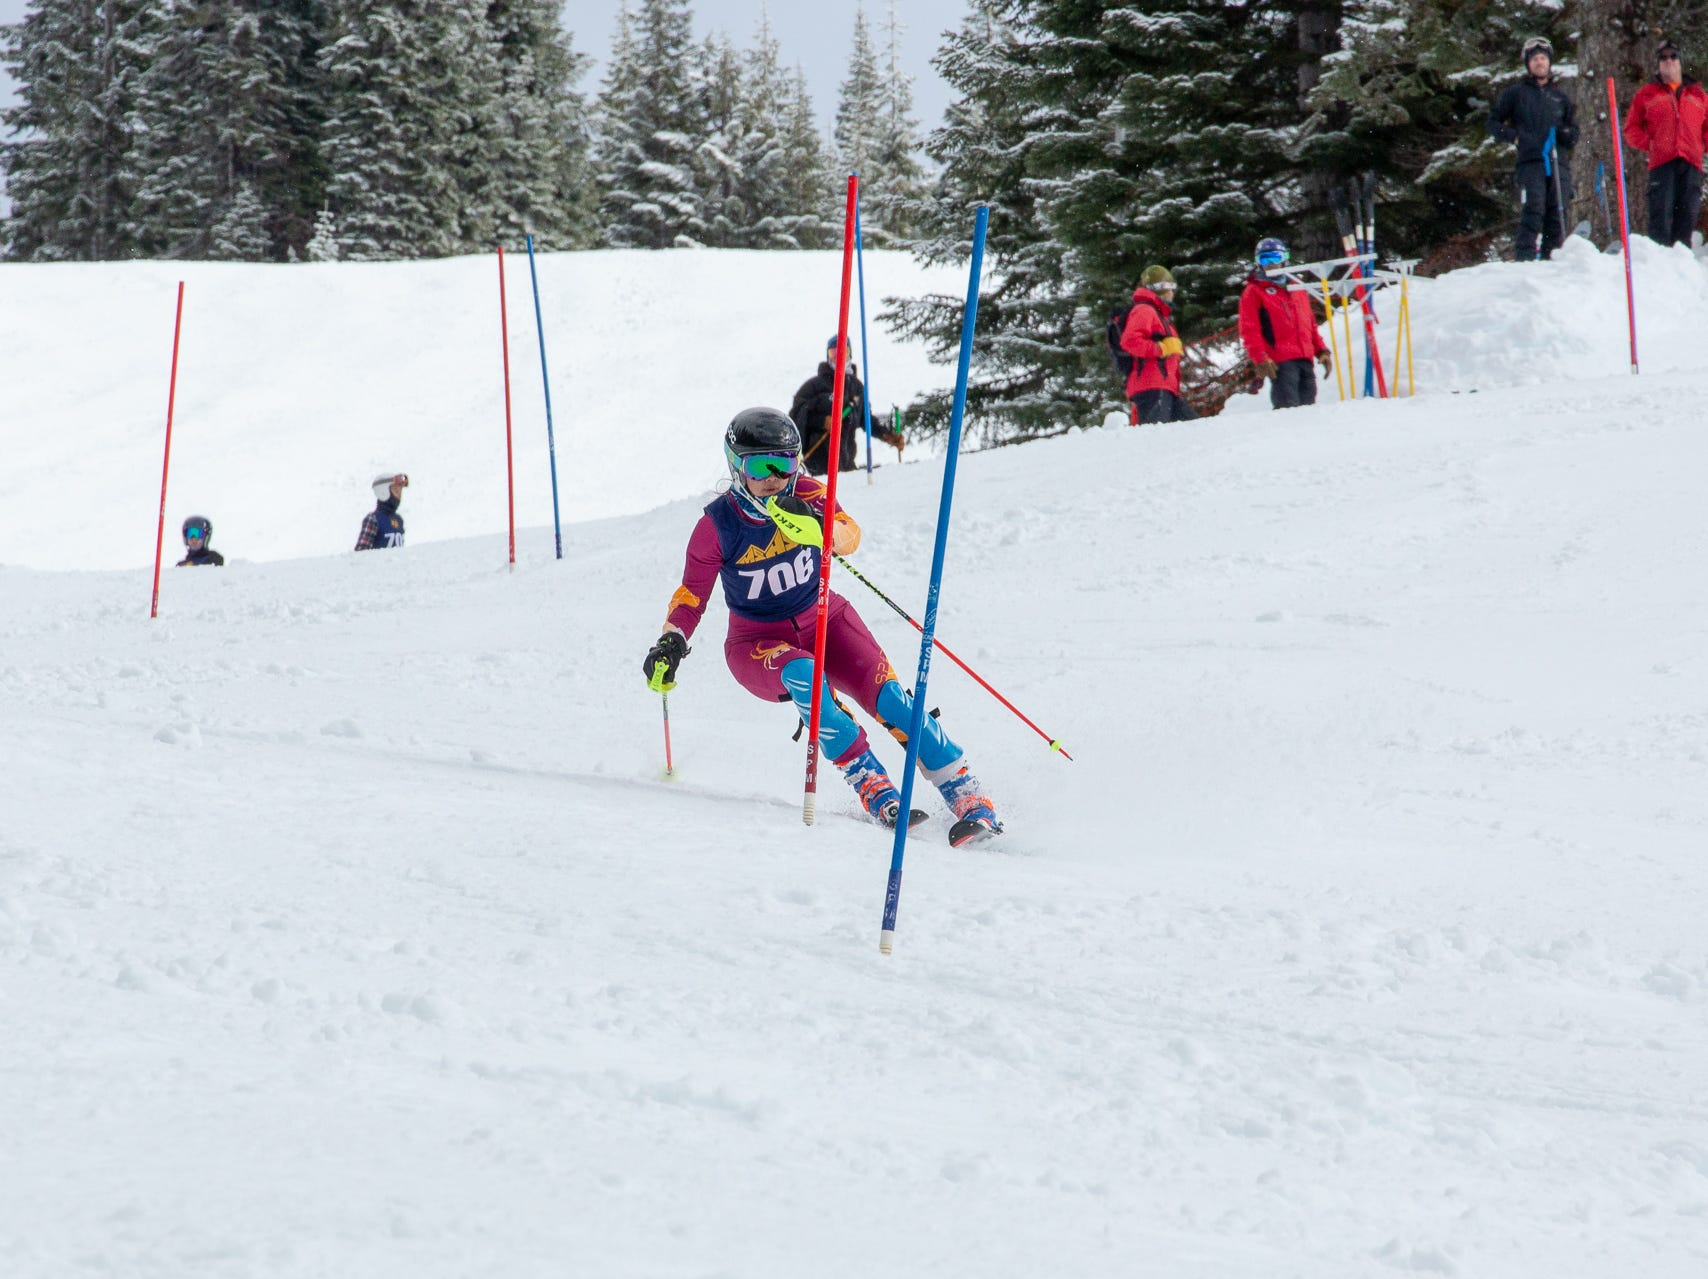 Zoe Malee of Mt. Shasta competes in the second high school ski meet of 2019 on Monday, Jan. 21 at Mt. Shasta Ski Park.